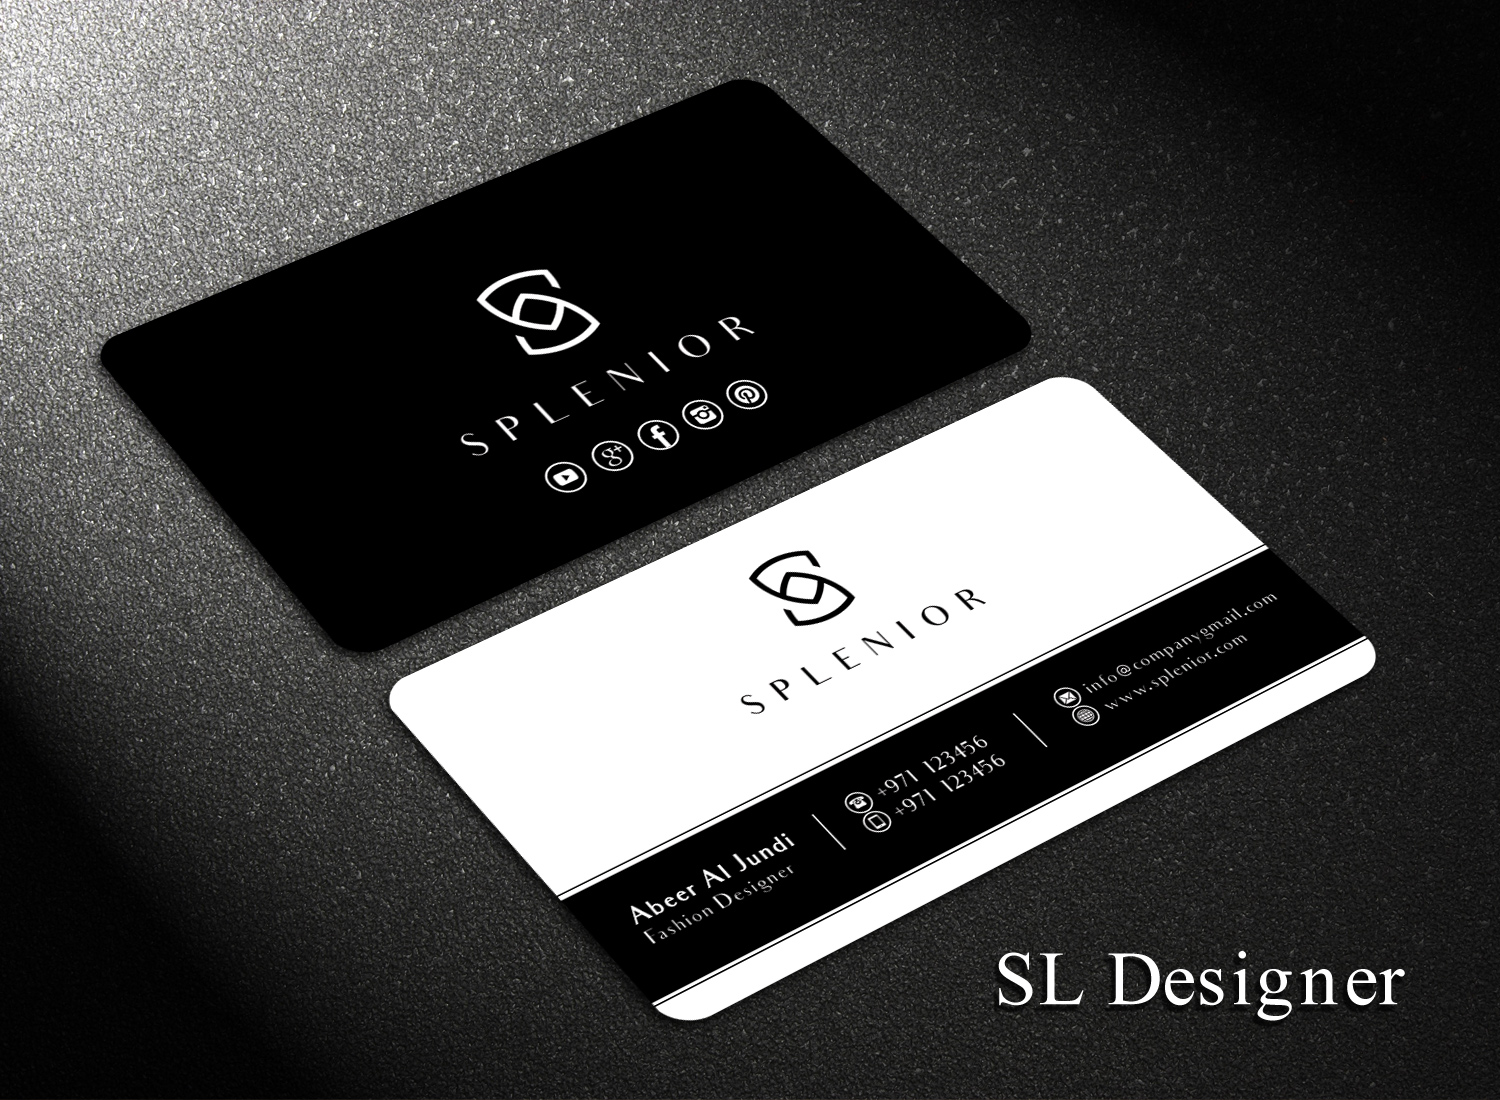 business card design by sl designer for this project design 17427139 - Fashion Designer Business Card